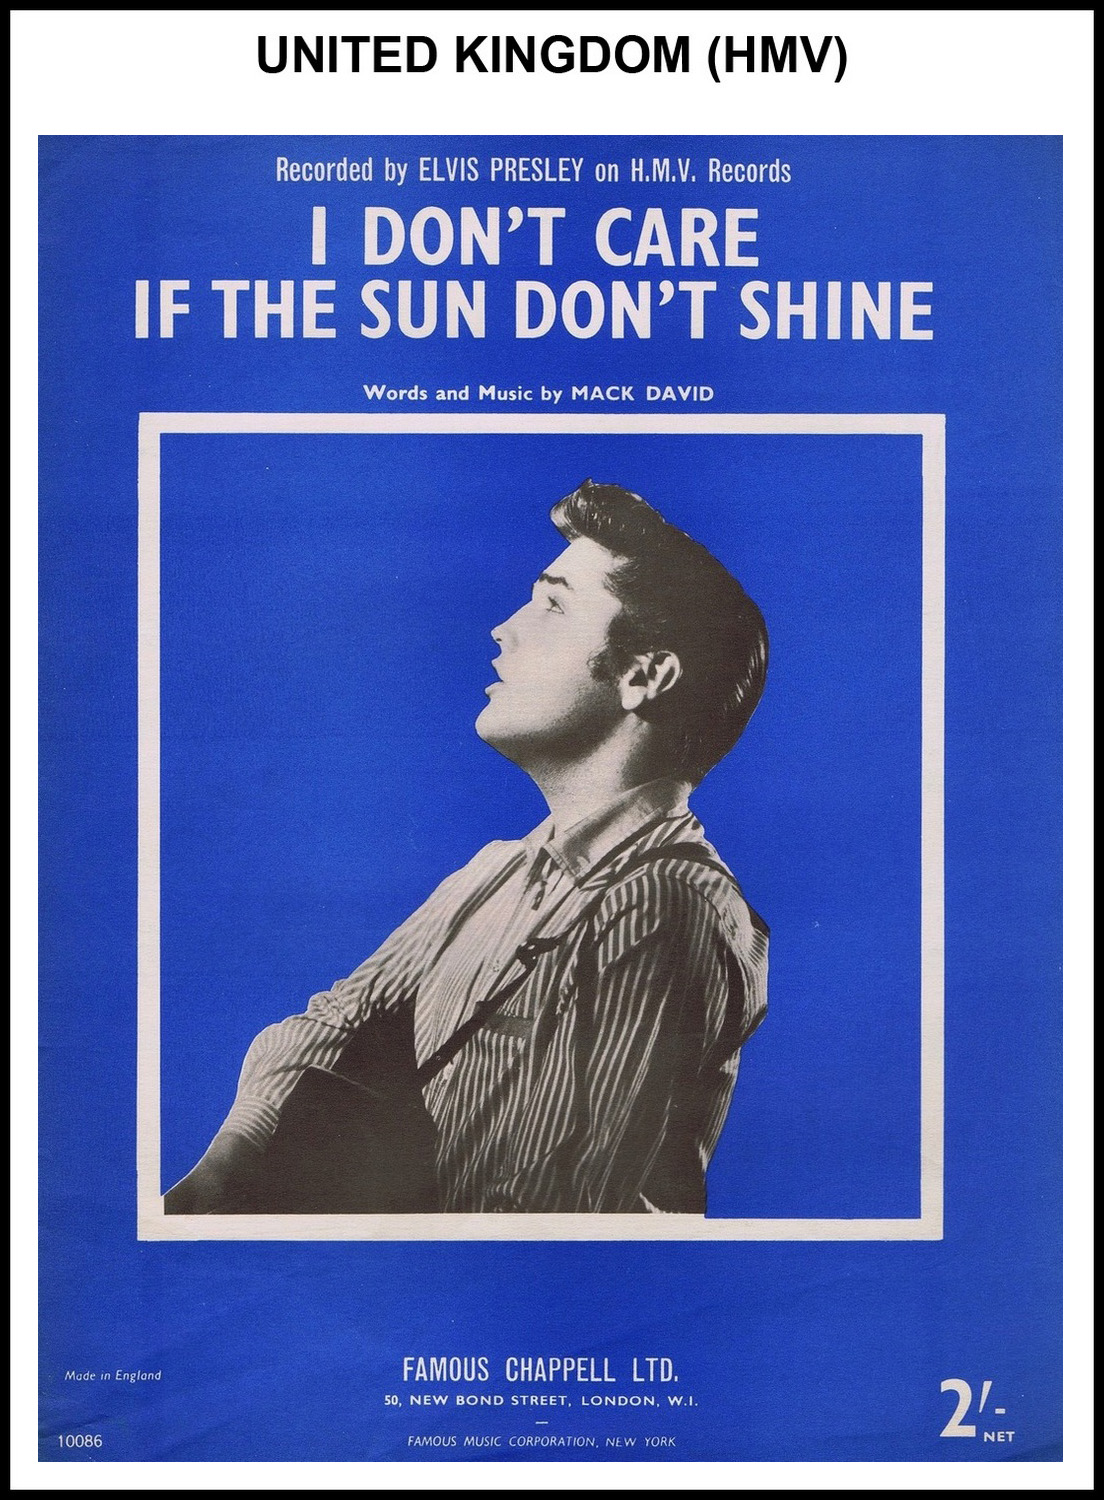 1954 - I Don't Care If The Sun Don't Shine (UK, HMV) 2 (CHRIS GILES COLLECTION)